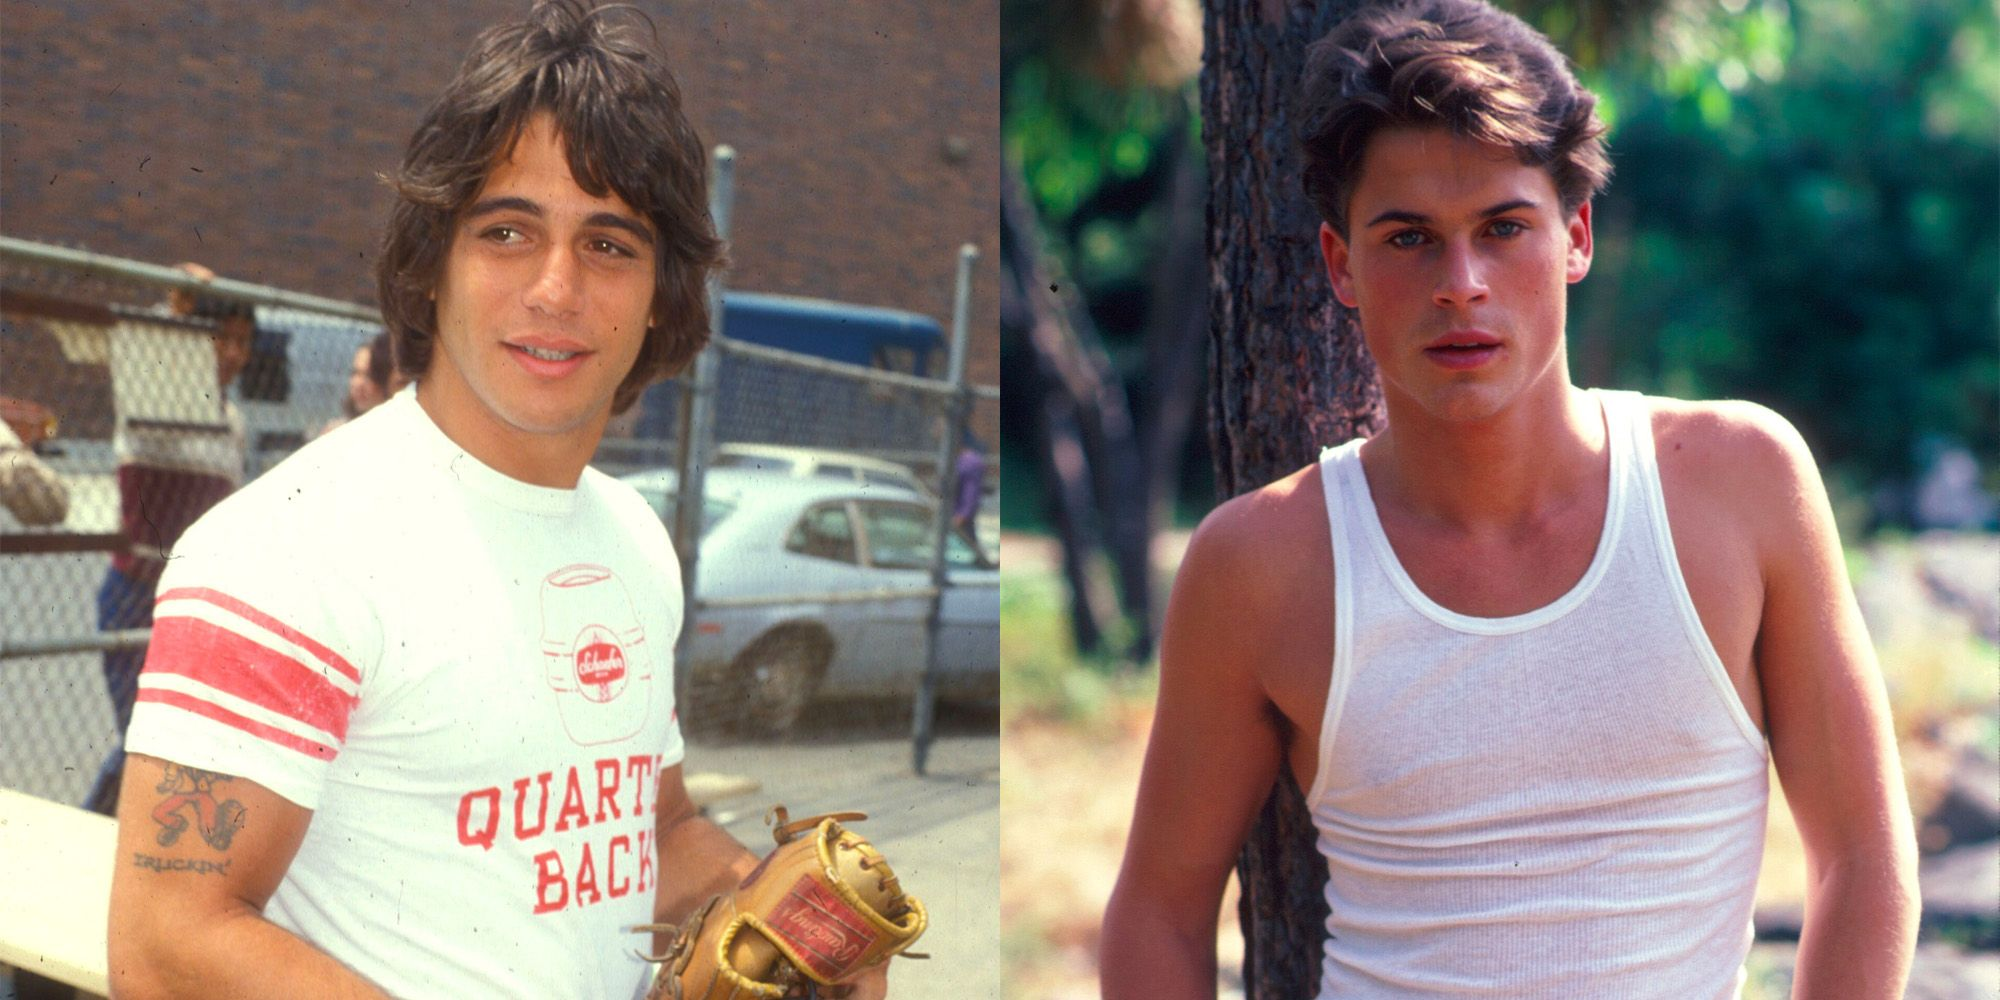 Then and Now: What These '80s Heartthrobs Look Like Today